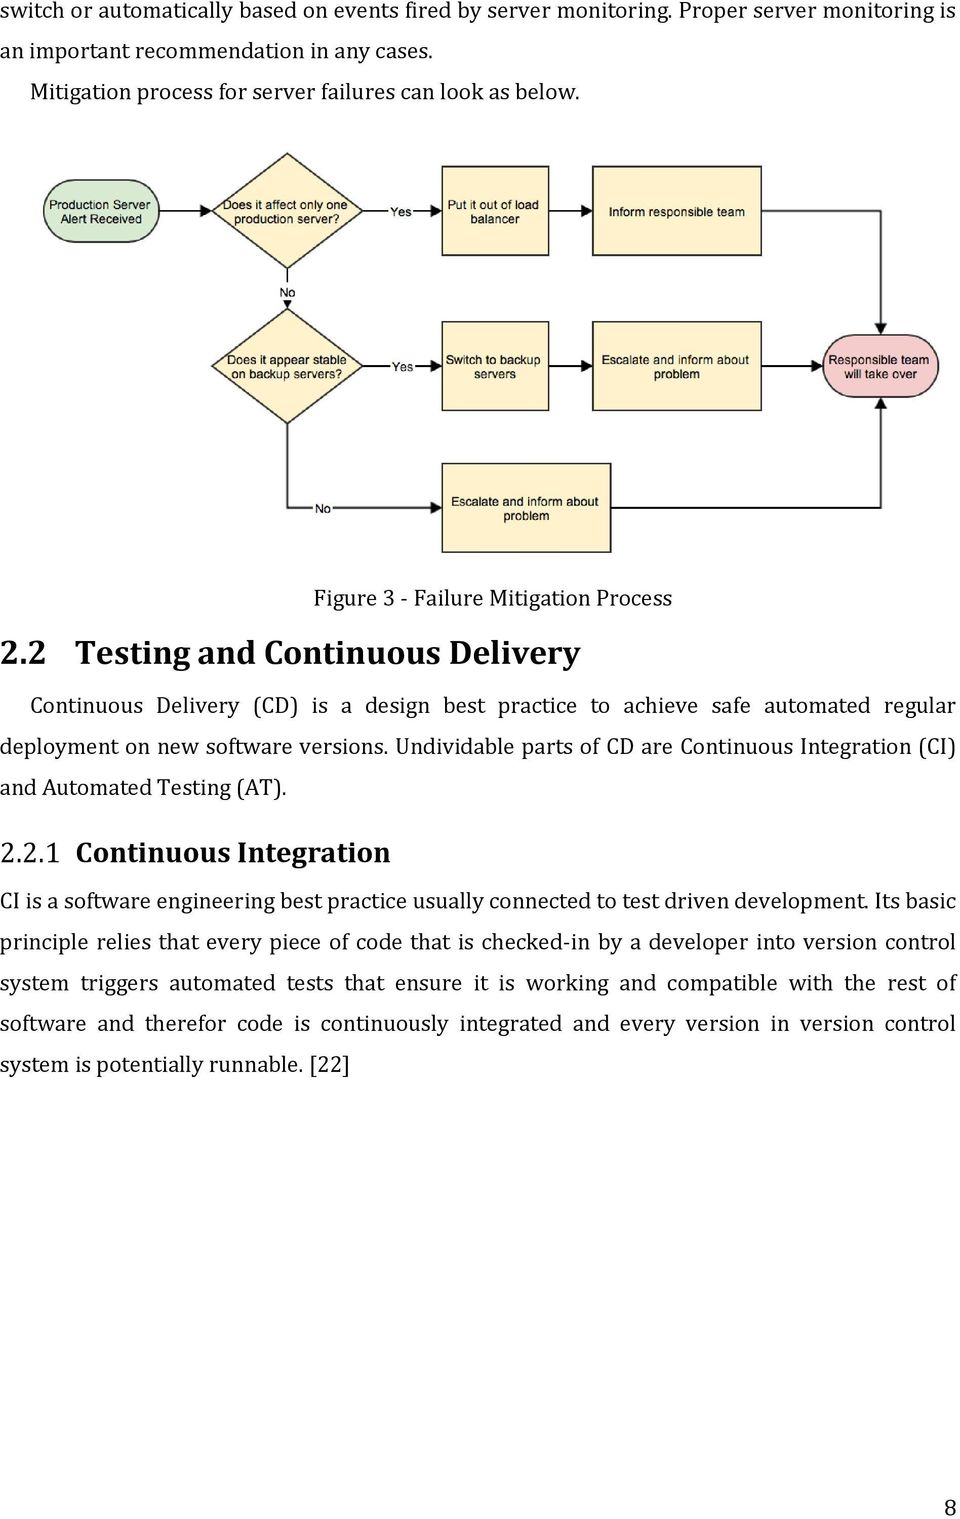 Undividable parts of CD are Continuous Integration (CI) and Automated Testing (AT). 2.2.1 Continuous Integration CI is a software engineering best practice usually connected to test driven development.